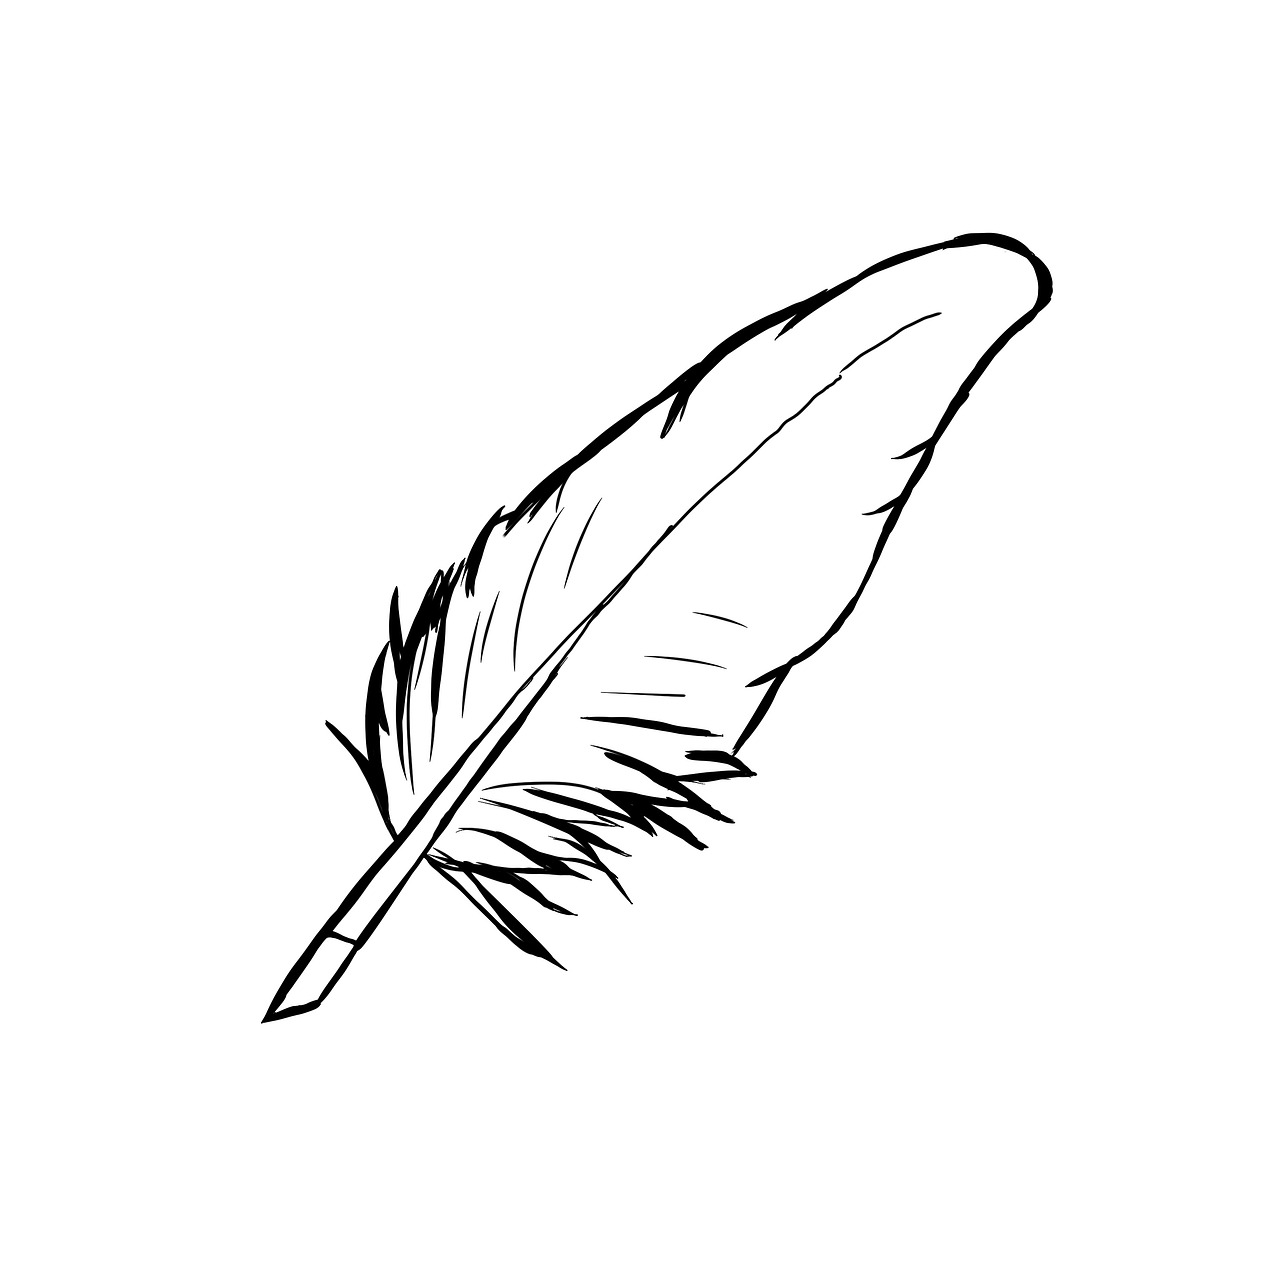 Clip Art Quill Pen Writer Free Photo On Pixabay